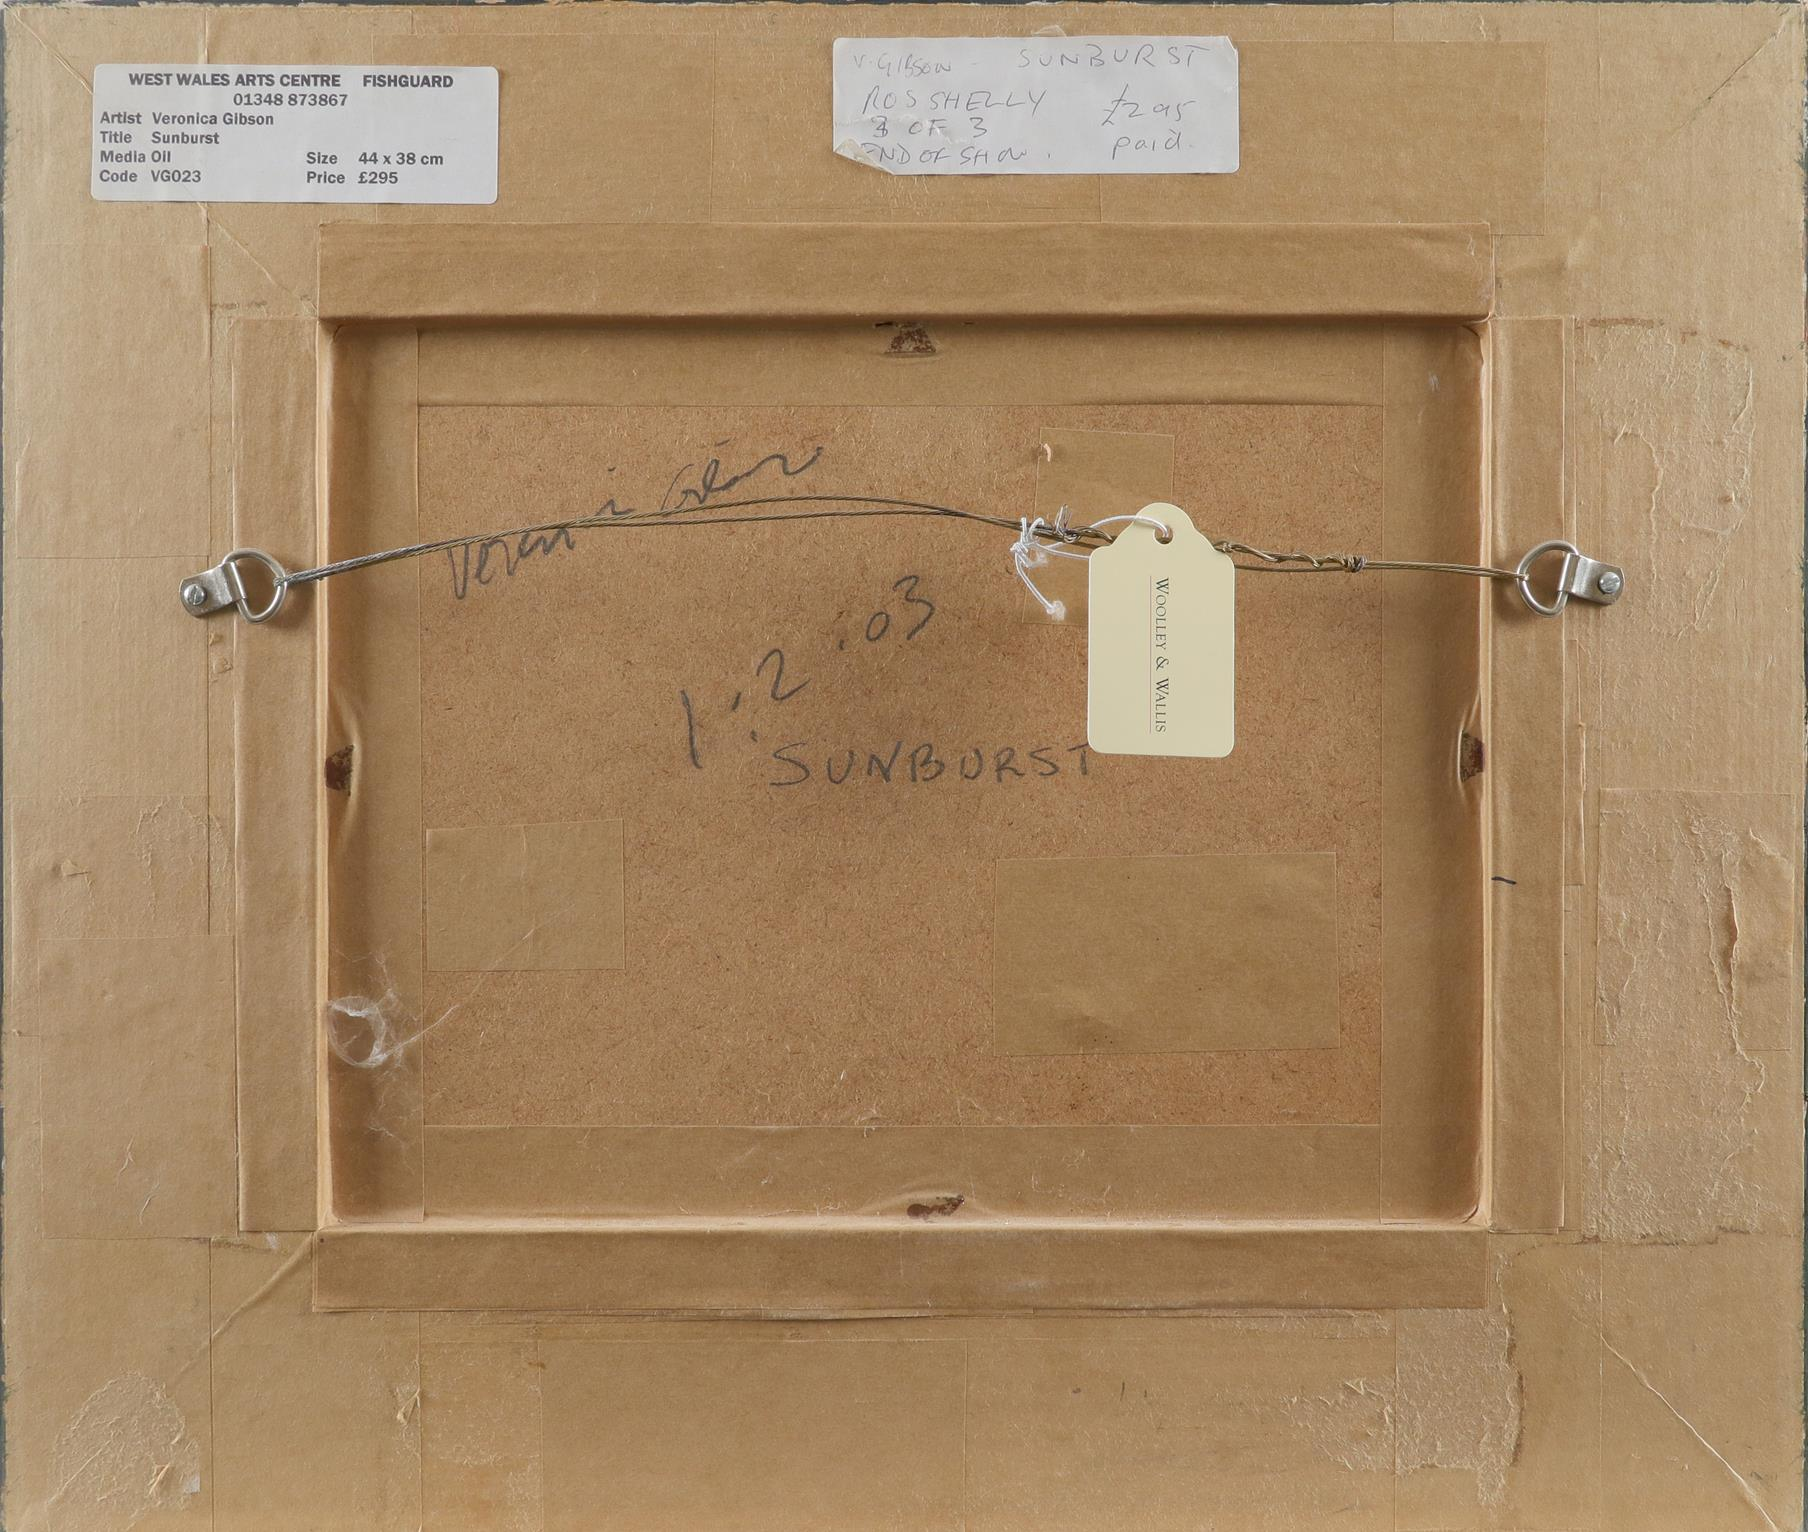 ‡Veronica Gibson (b.1954) Sunburst Signed, dated and inscribed Veronica Gibson/1.2.03/'SUNBURST' (to - Image 3 of 3